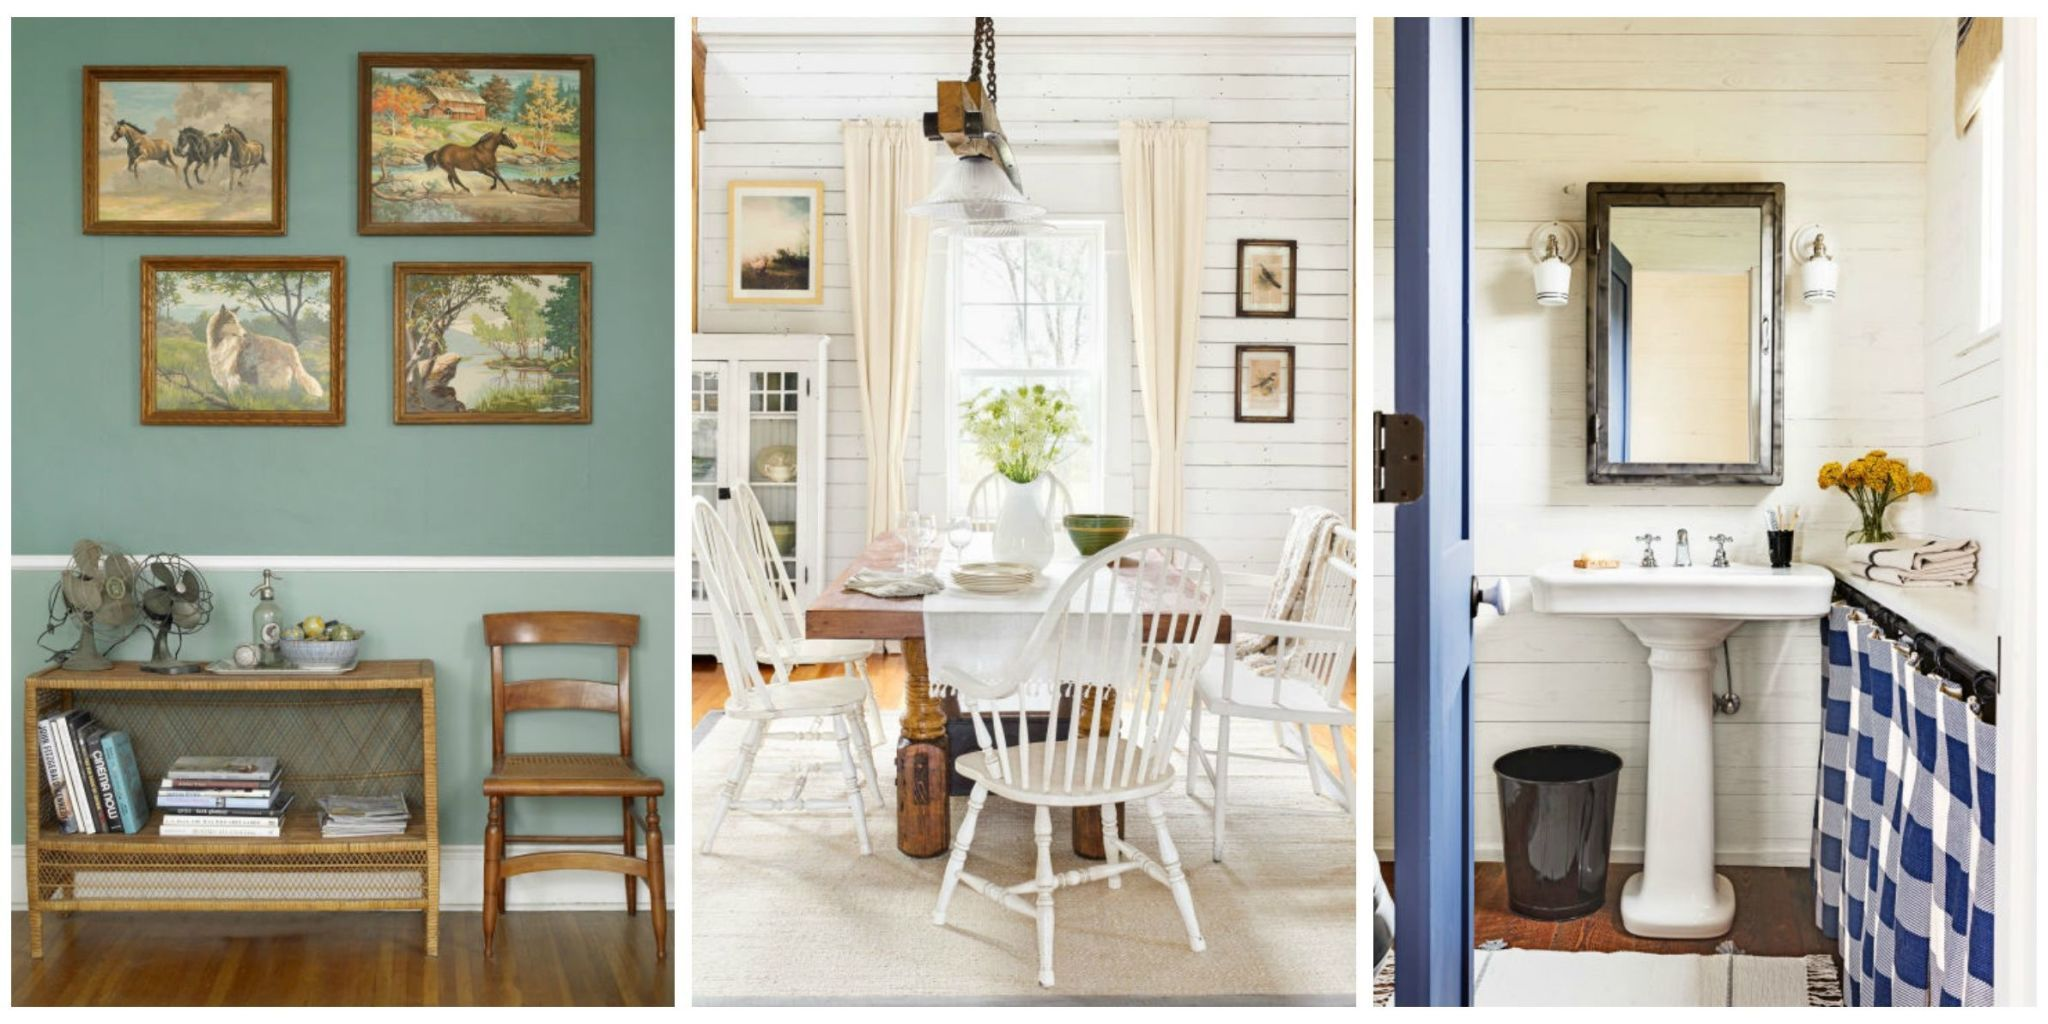 High Quality Small Decorating Projects Can Freshen Up Your Home And Be Inexpensive. Try  One Or Two Of These Budget Friendly Fixes For An Instant Update!